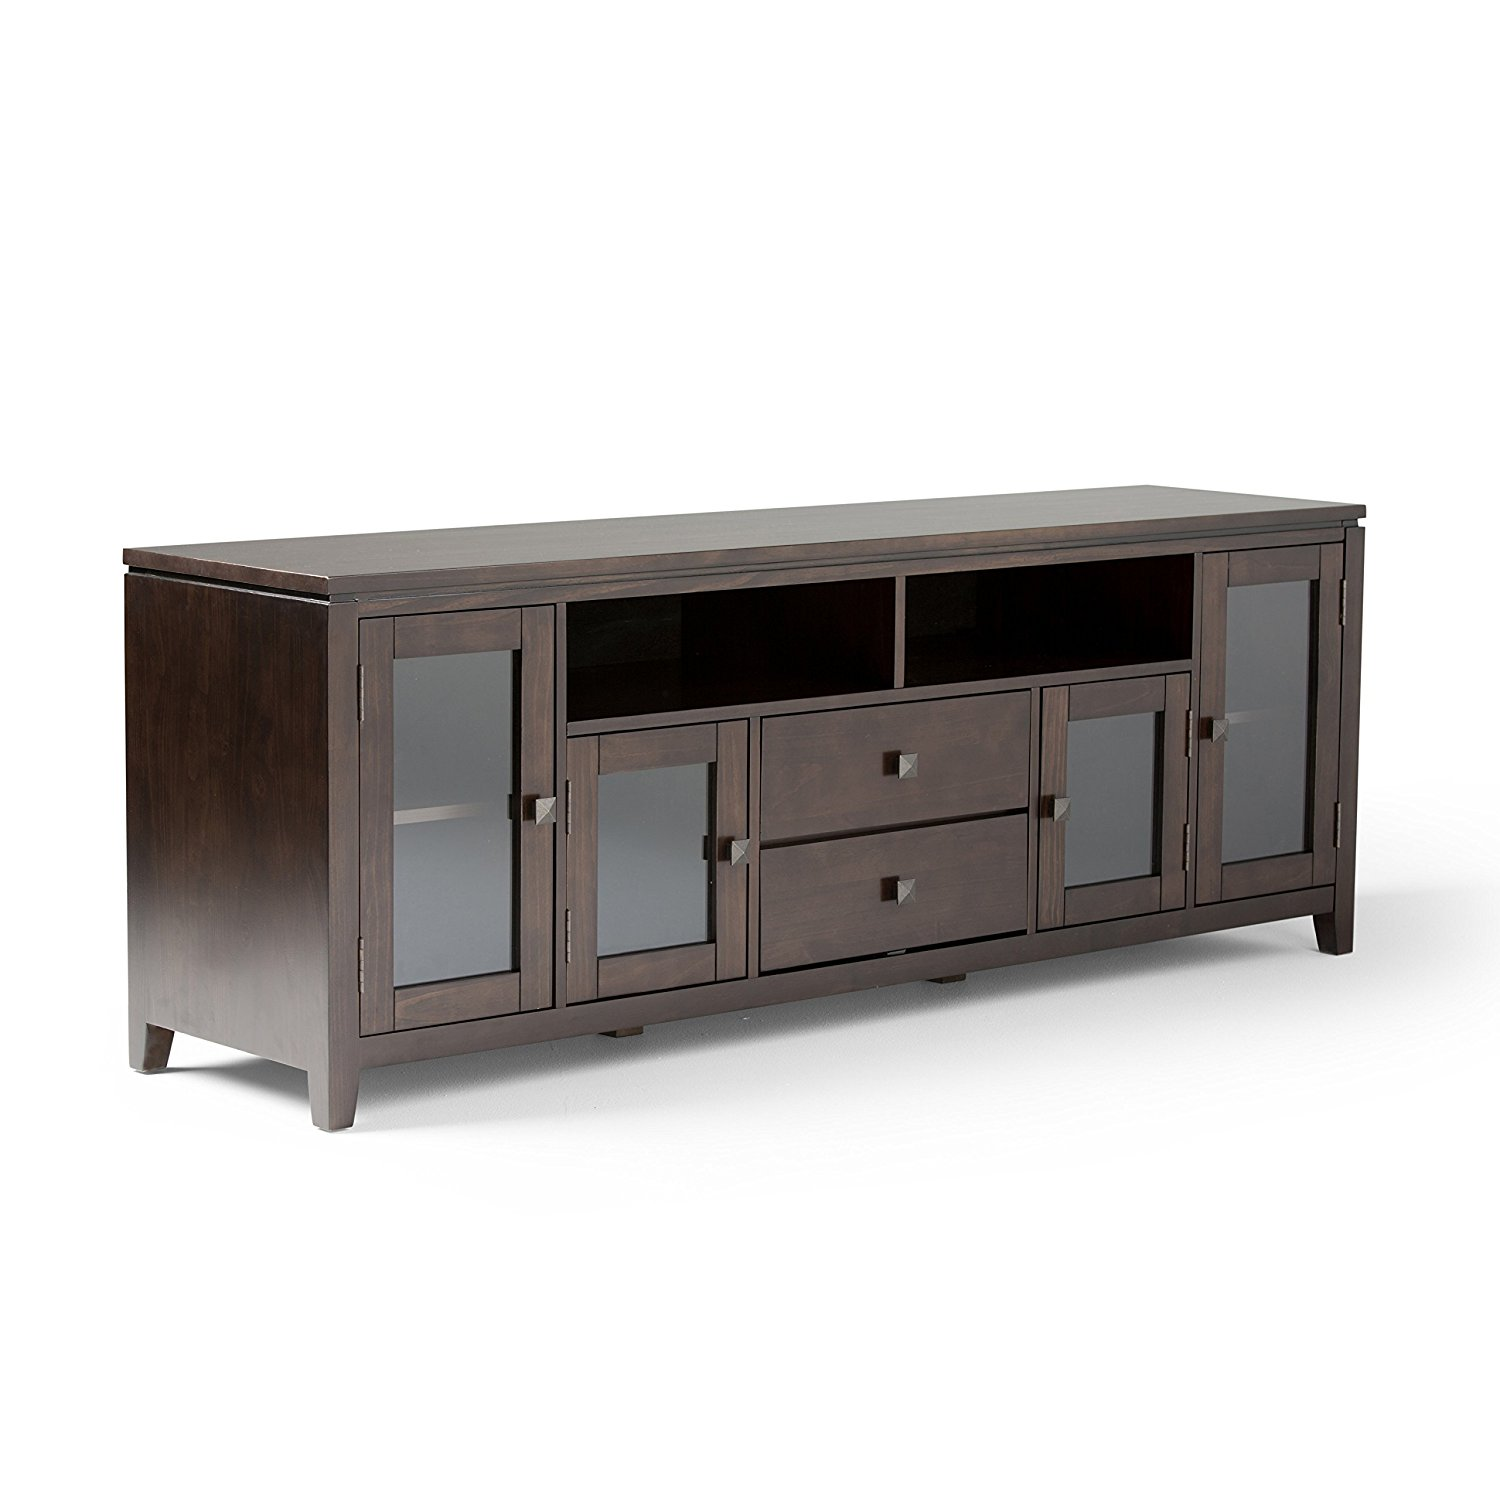 "Simpli Home Cosmopolitan Wide TV Media Stand, 72"", Coffee Brown"